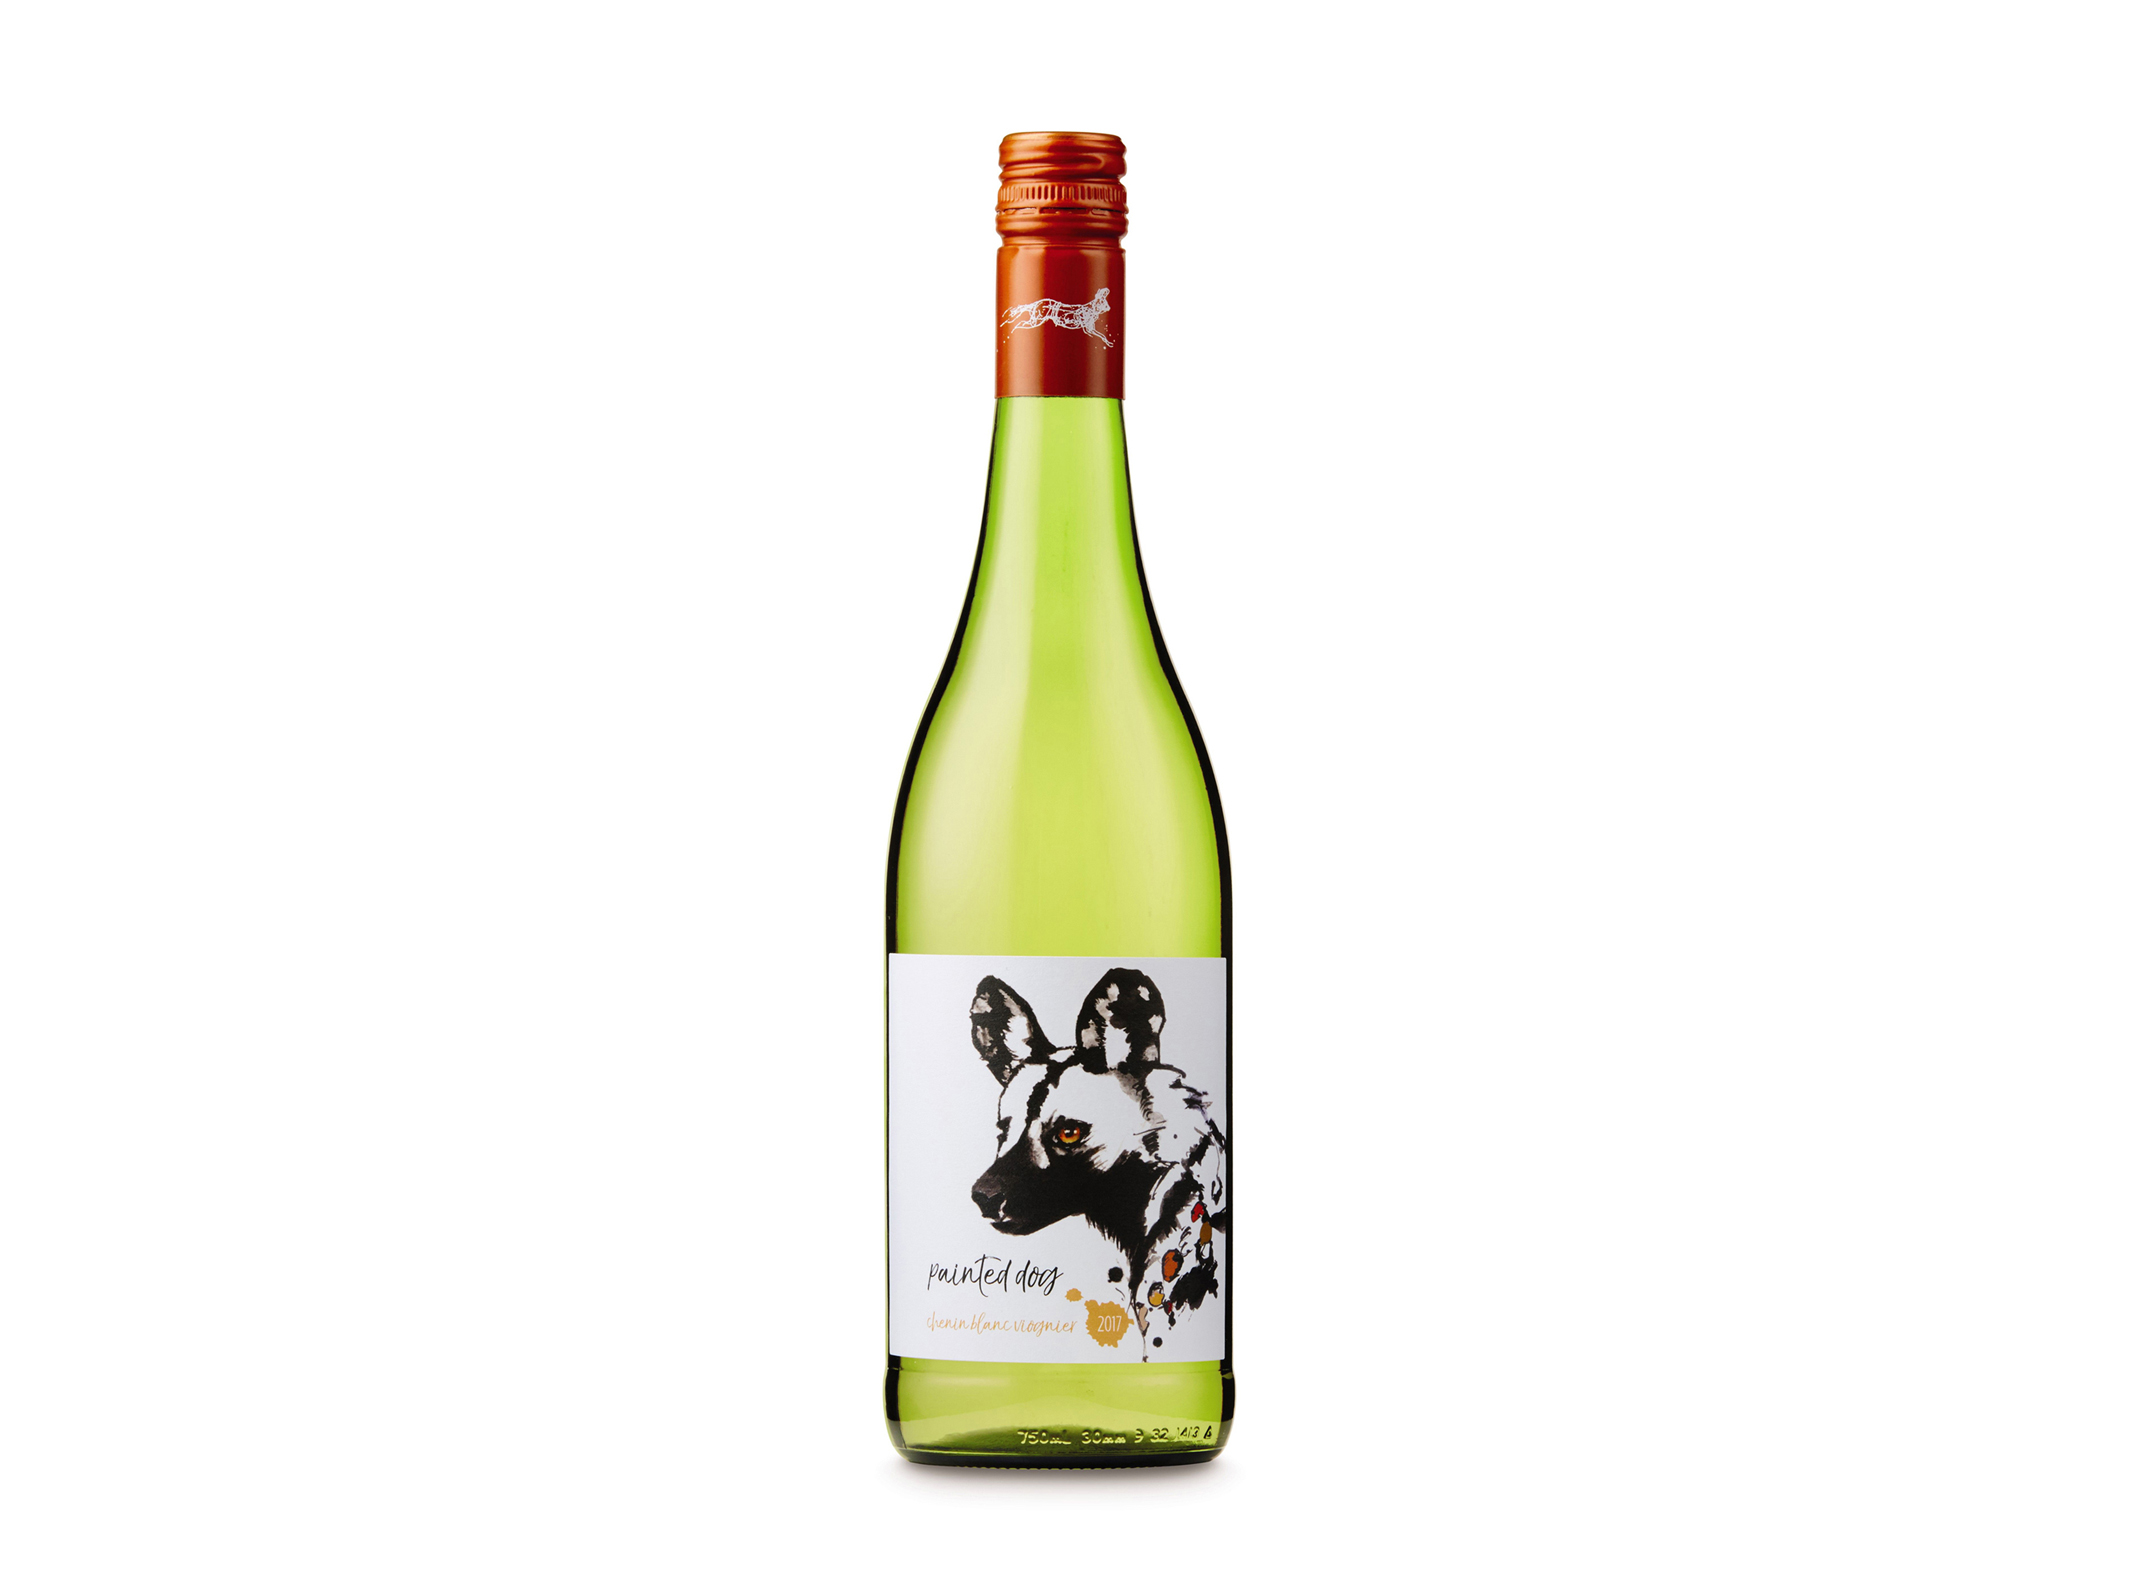 Painted Dog Chenin Blanc Viognier, SA